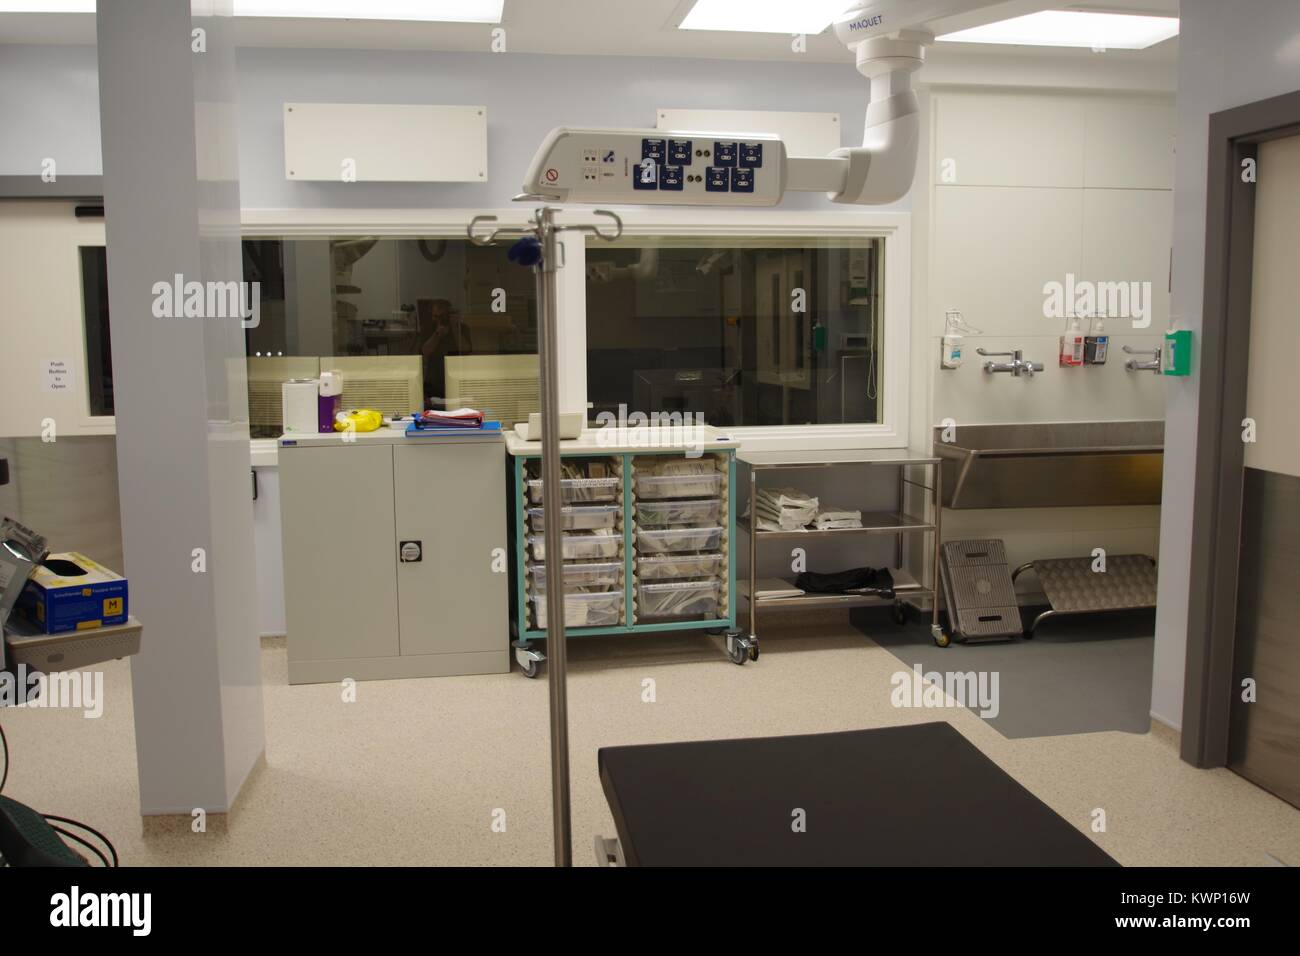 Modern British Hospital Operating Theatre. - Stock Image